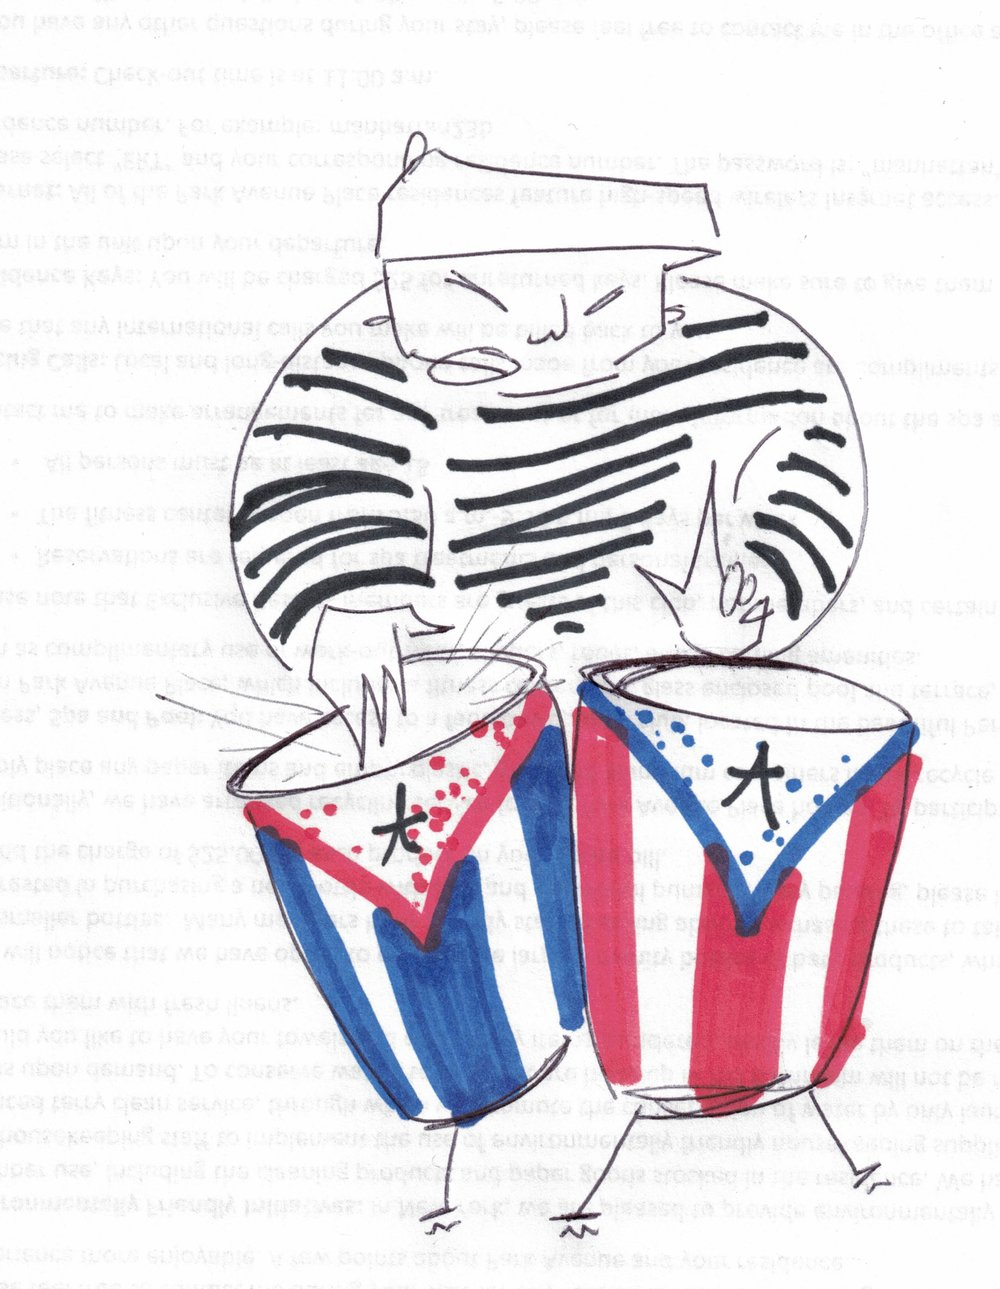 Pico Del Barrio: - Traveling through music, Pico has learned and mastered all forms of Latino genres around the world. His motive is to bring awareness to the wickedness of mankind. But more importantly, being half Cuban and half Puerto Rican makes him a Cuba-Rican.#picodelbarrio